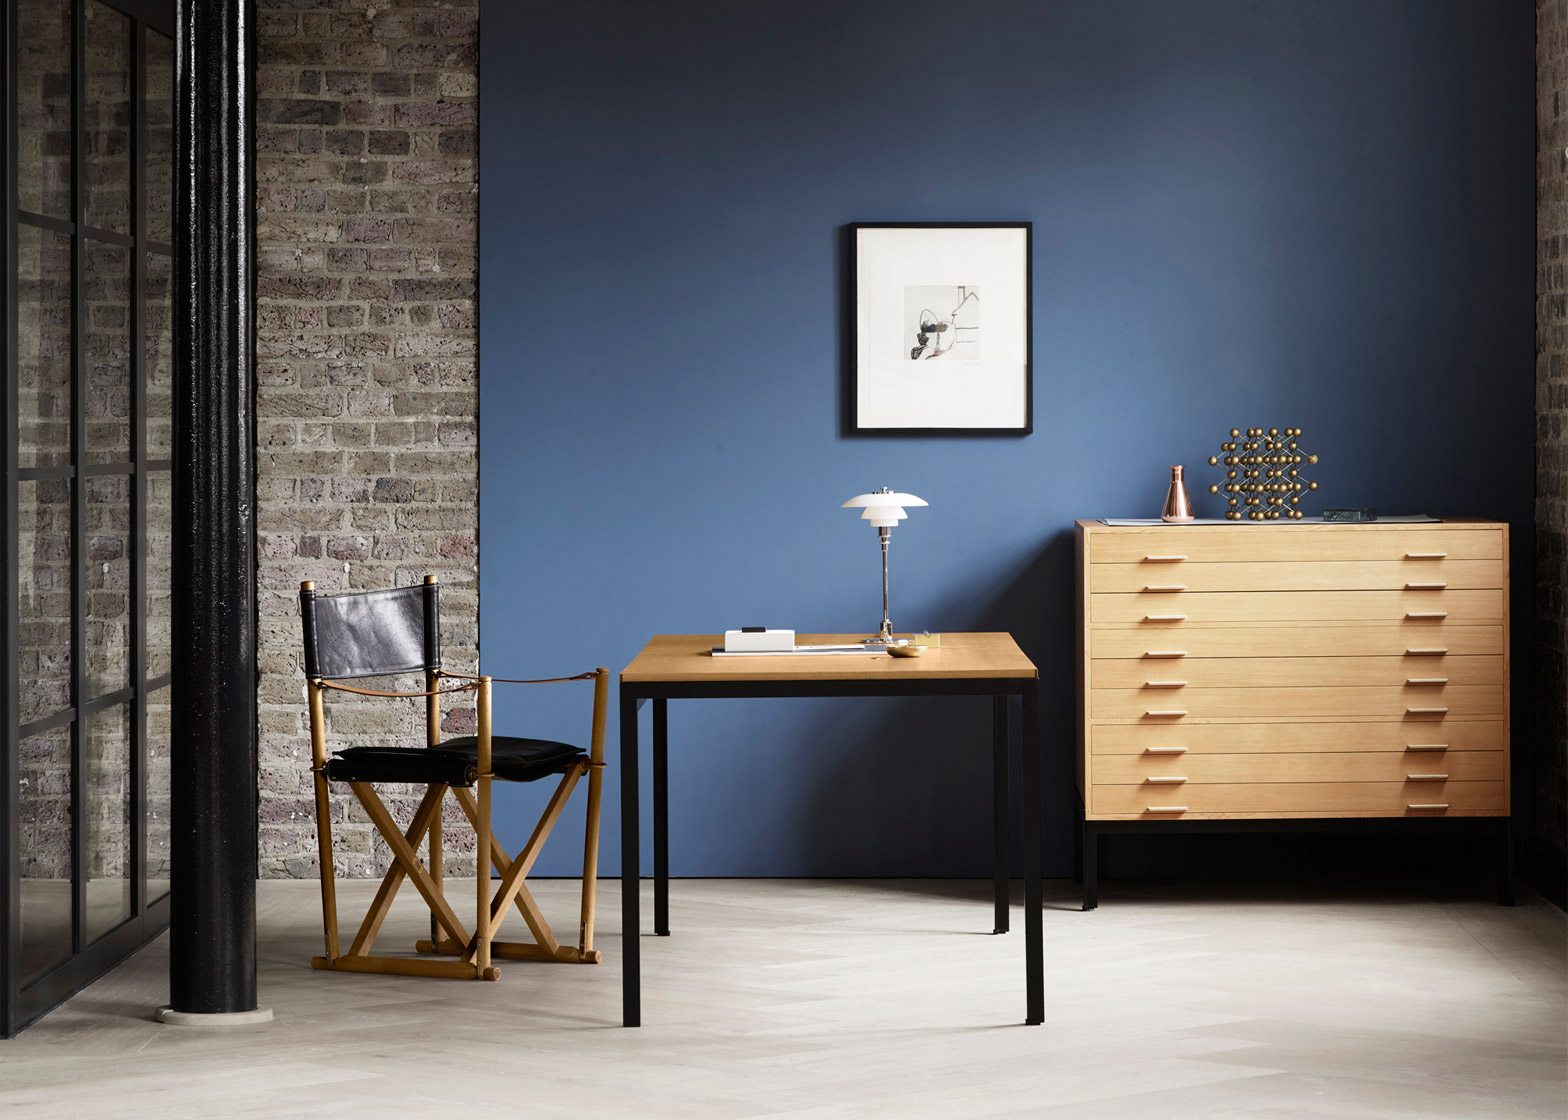 poul-kjaerholm-pk52-professor-desk-oak-drawer-tables-carl-hansen-son_dezeen_1568_3